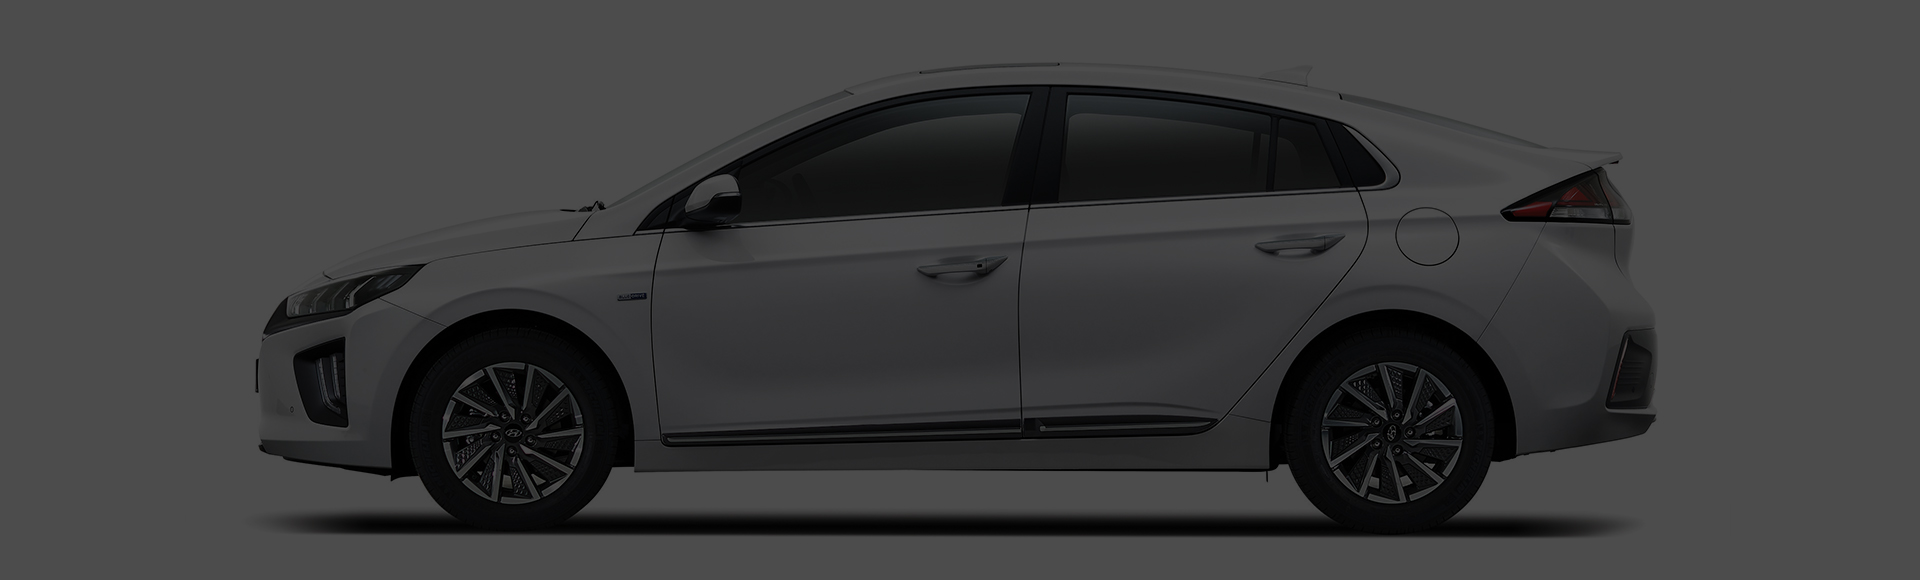 IONIQ electric exterior side design